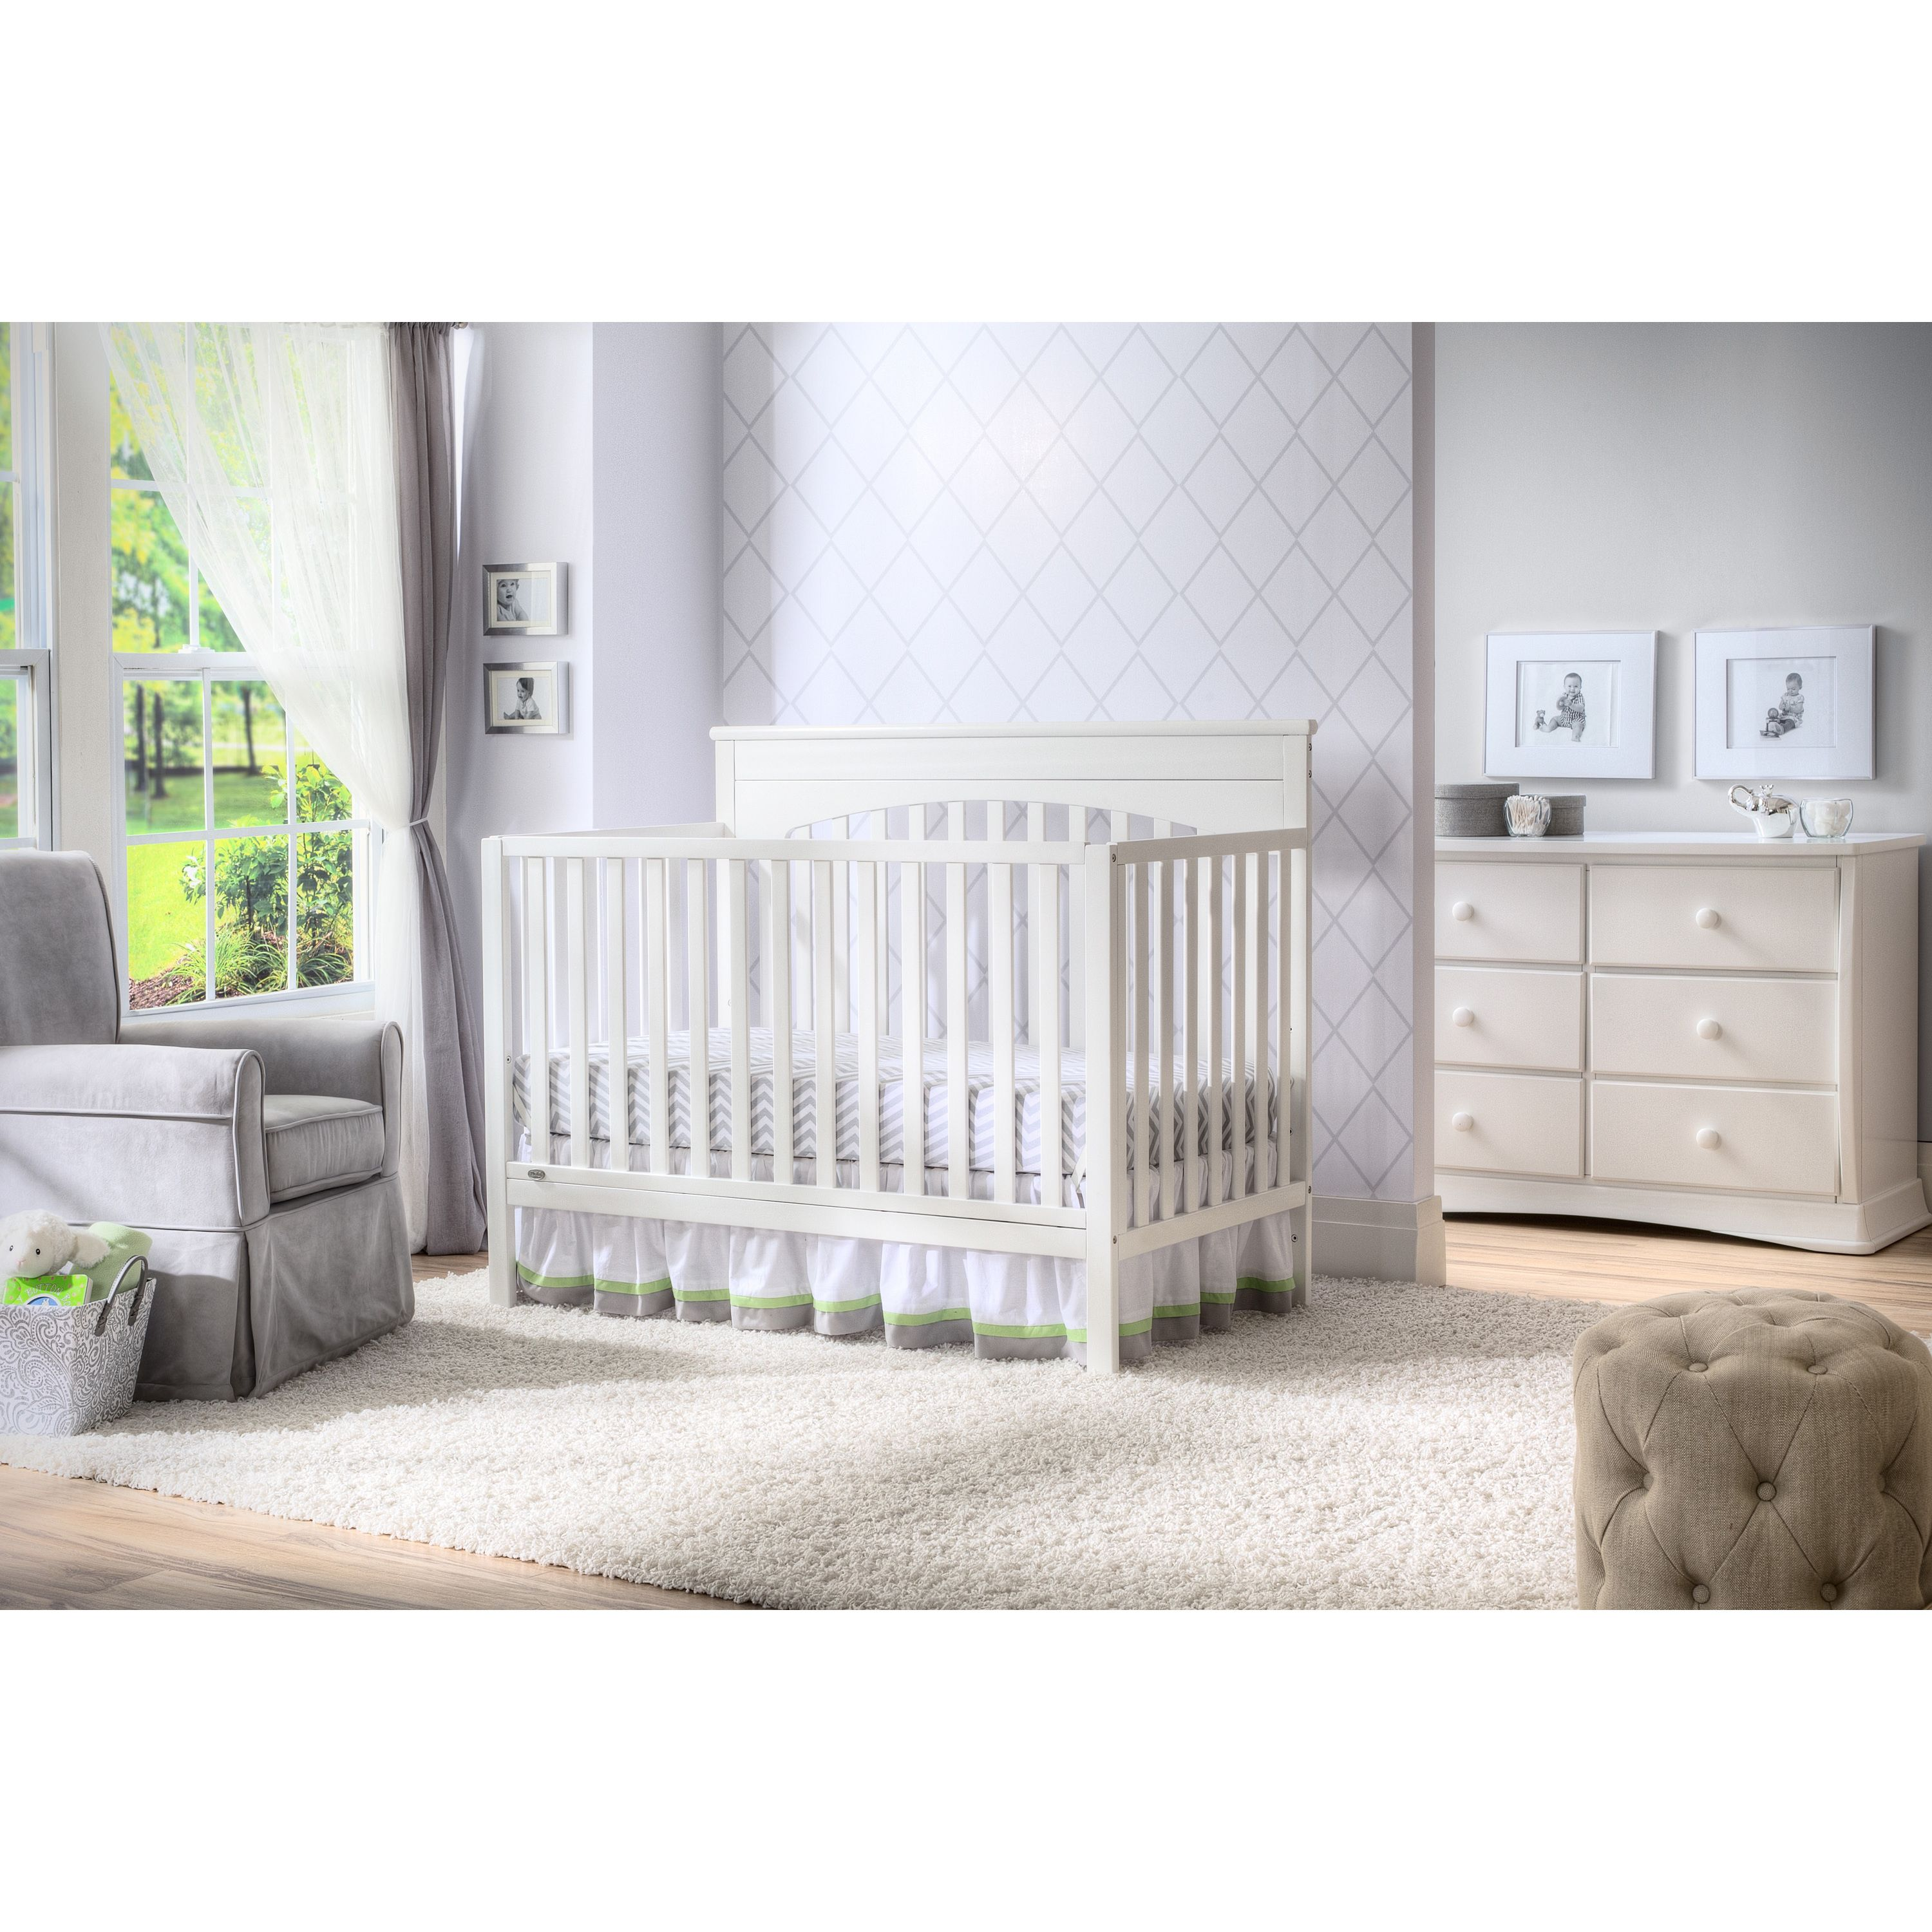 categories and pacific storkcraftpacificcribchanger white drawers product with storkcraft cribs changer convertible baby official in crib website